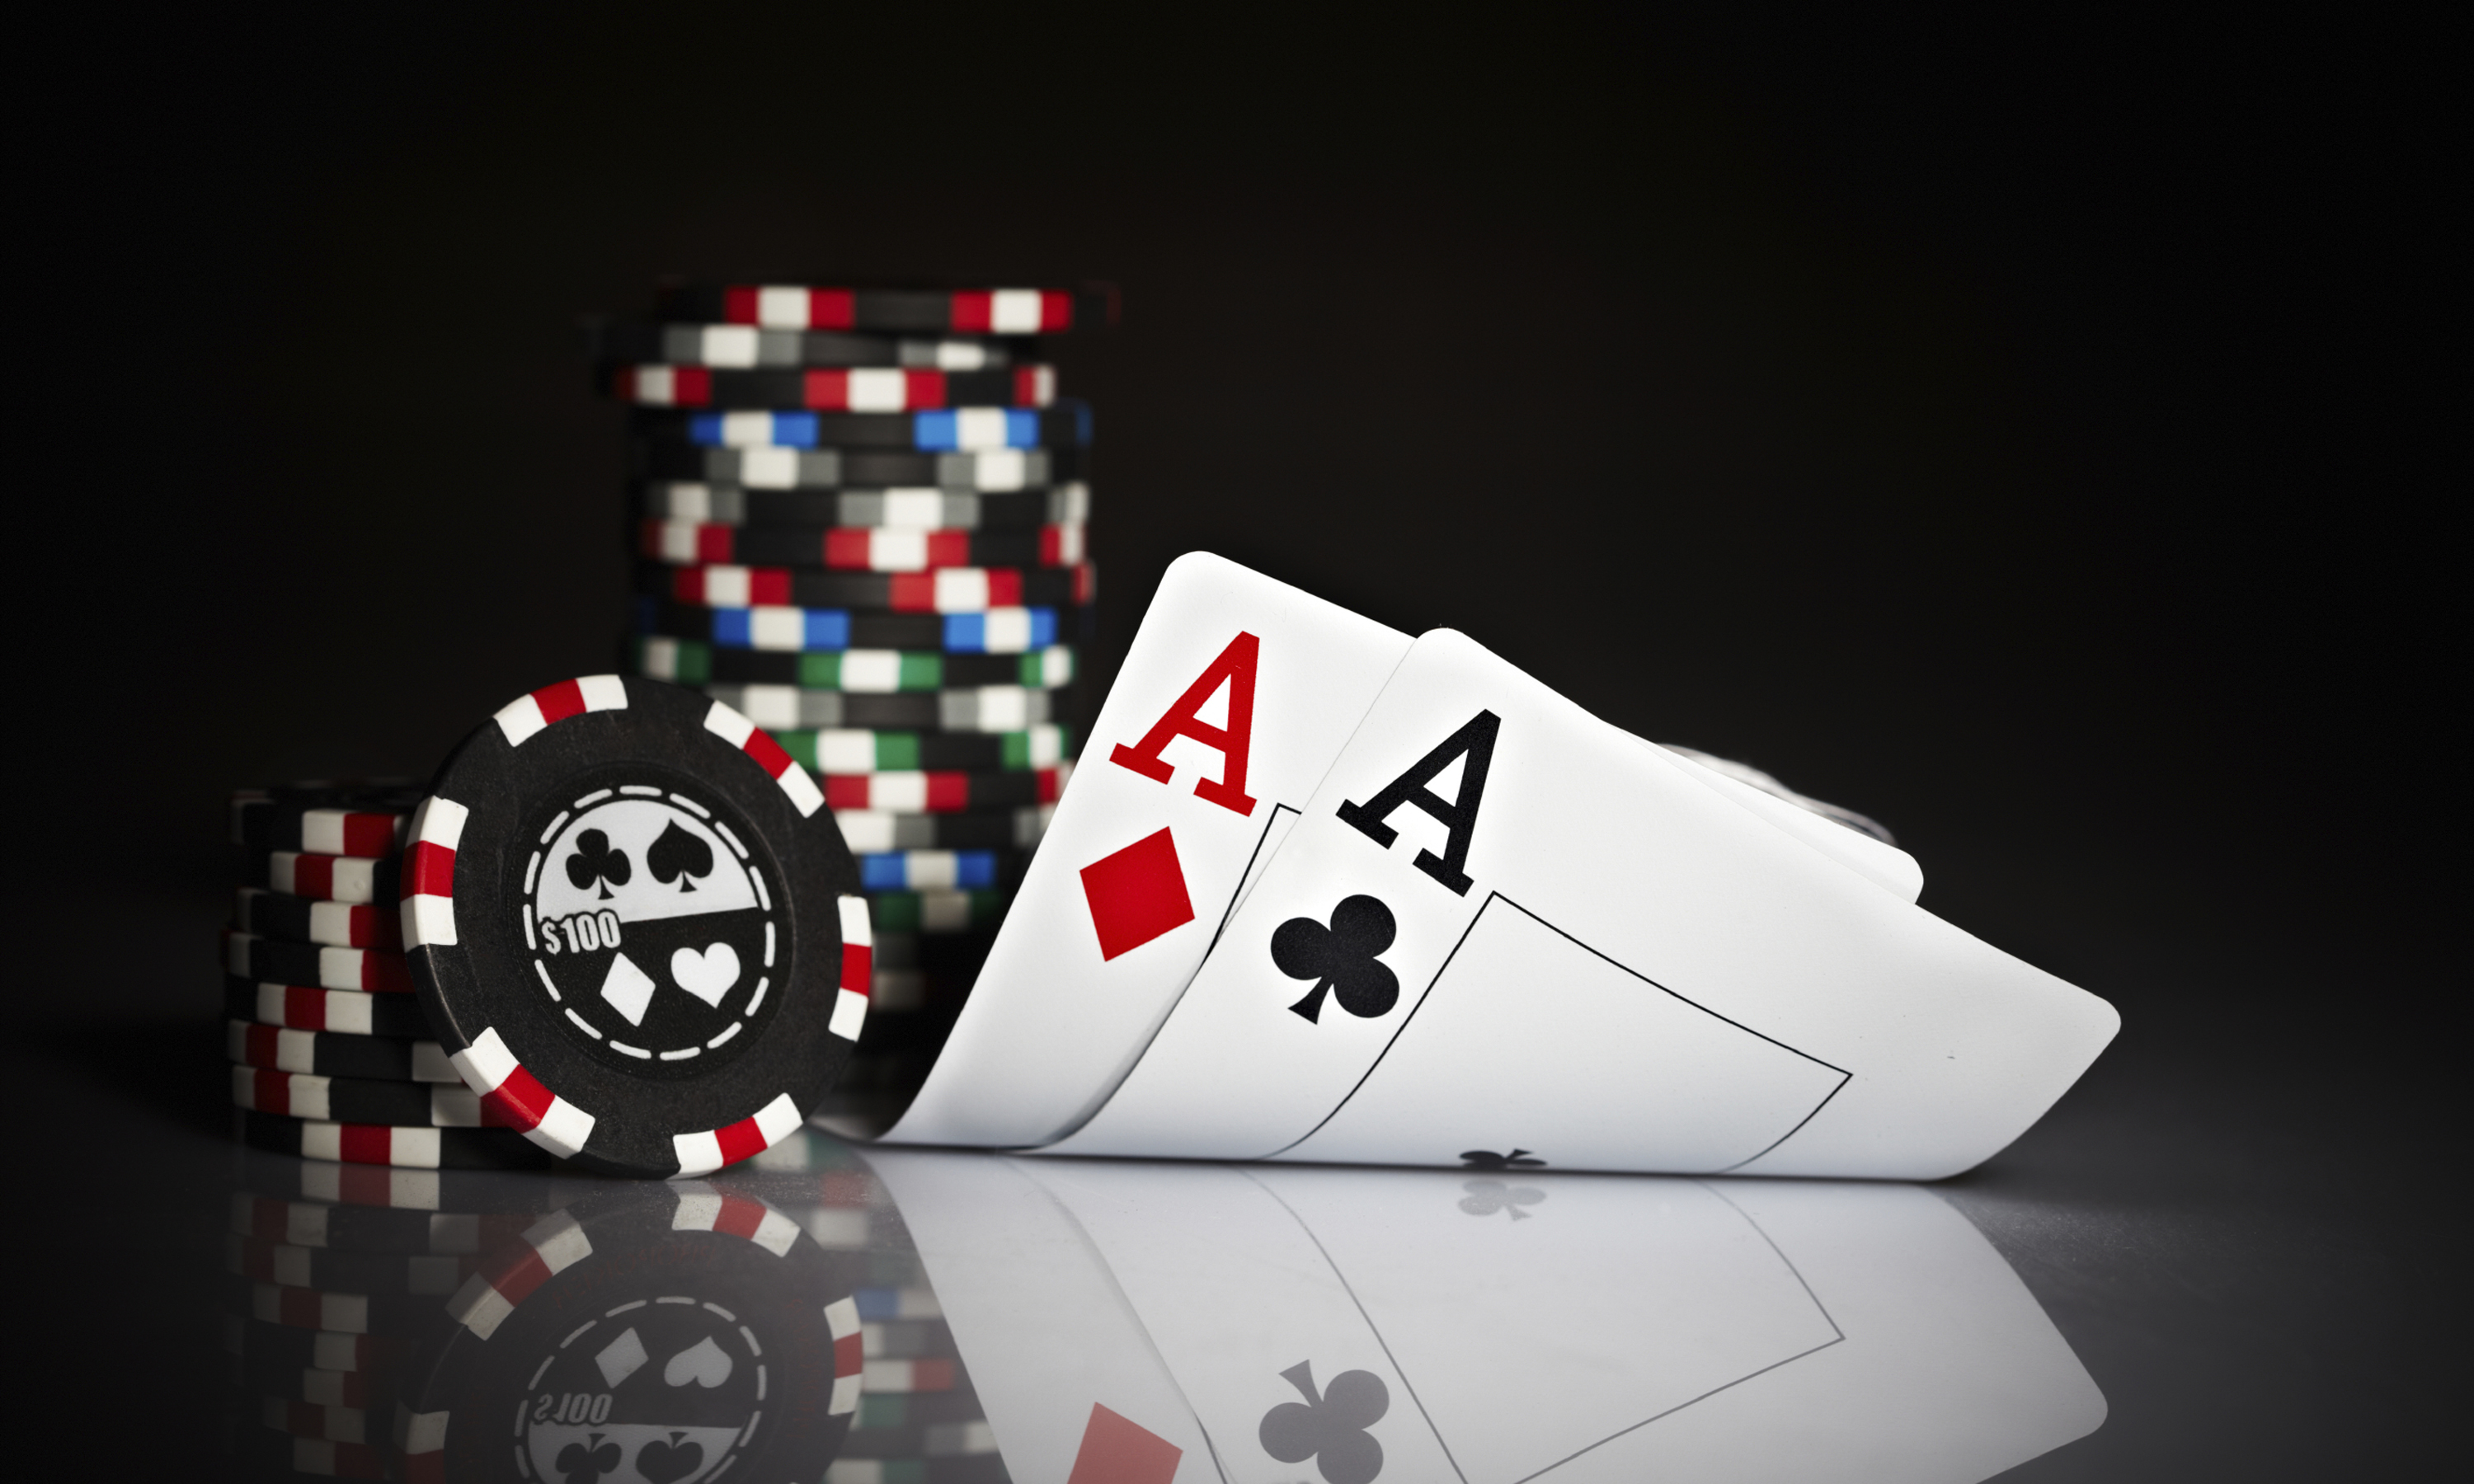 Play Joker Poker Online Videopoker | Welcome Bonus of up to $/£/€400 | Casino.com